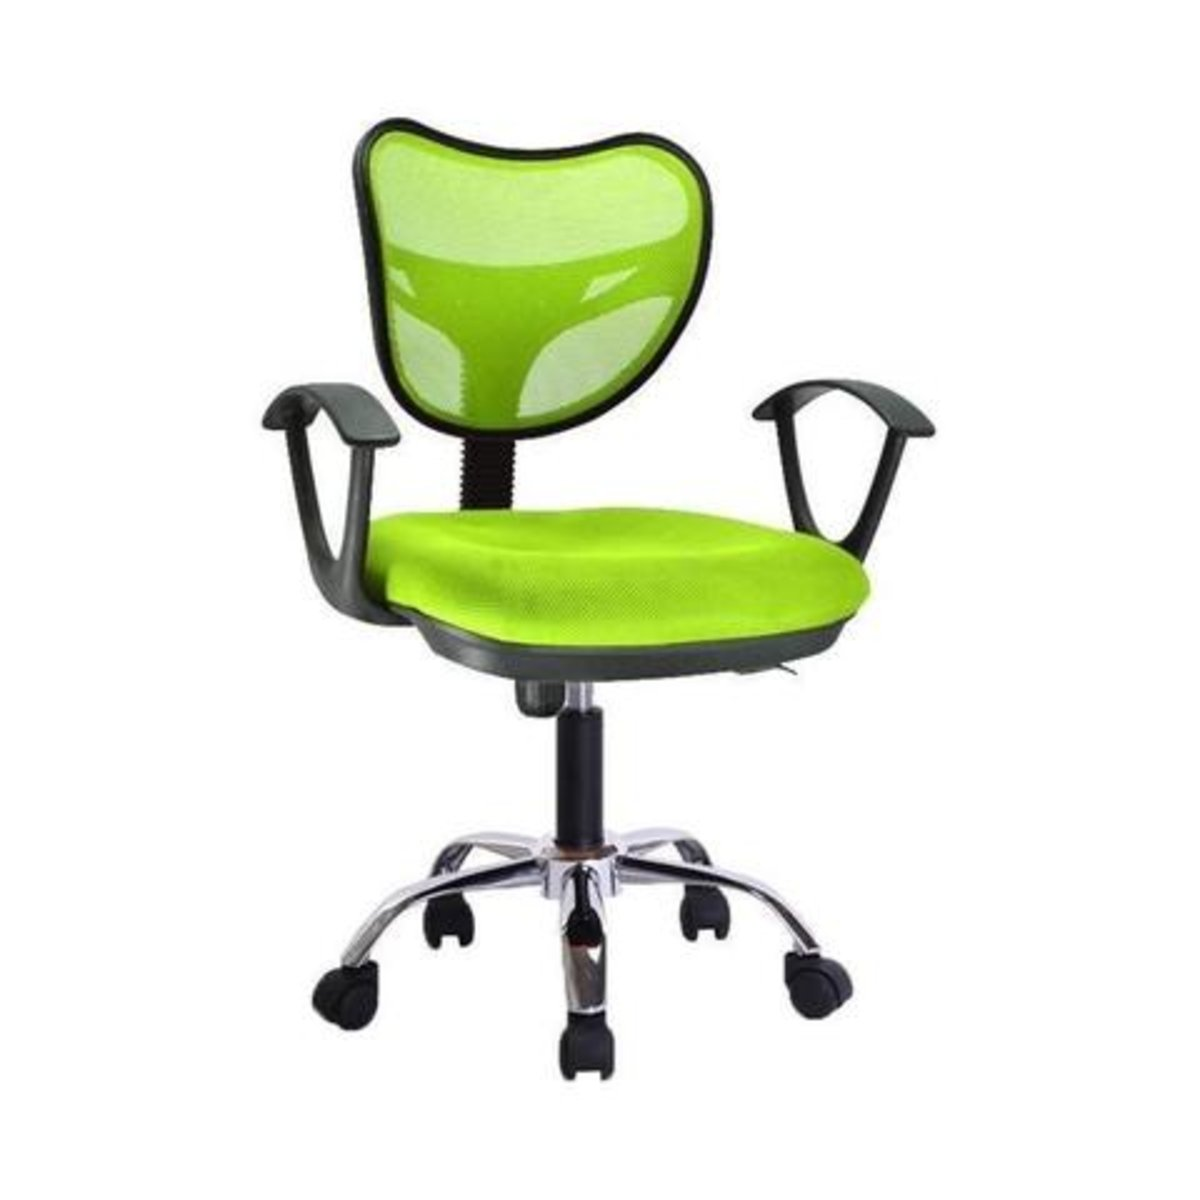 Disassemble office chair Hack Suchprice Suchprice S05 Office Chair Green disassemble Hktvmall Online Shopping Proboards66 Suchprice Suchprice S05 Office Chair Green disassemble